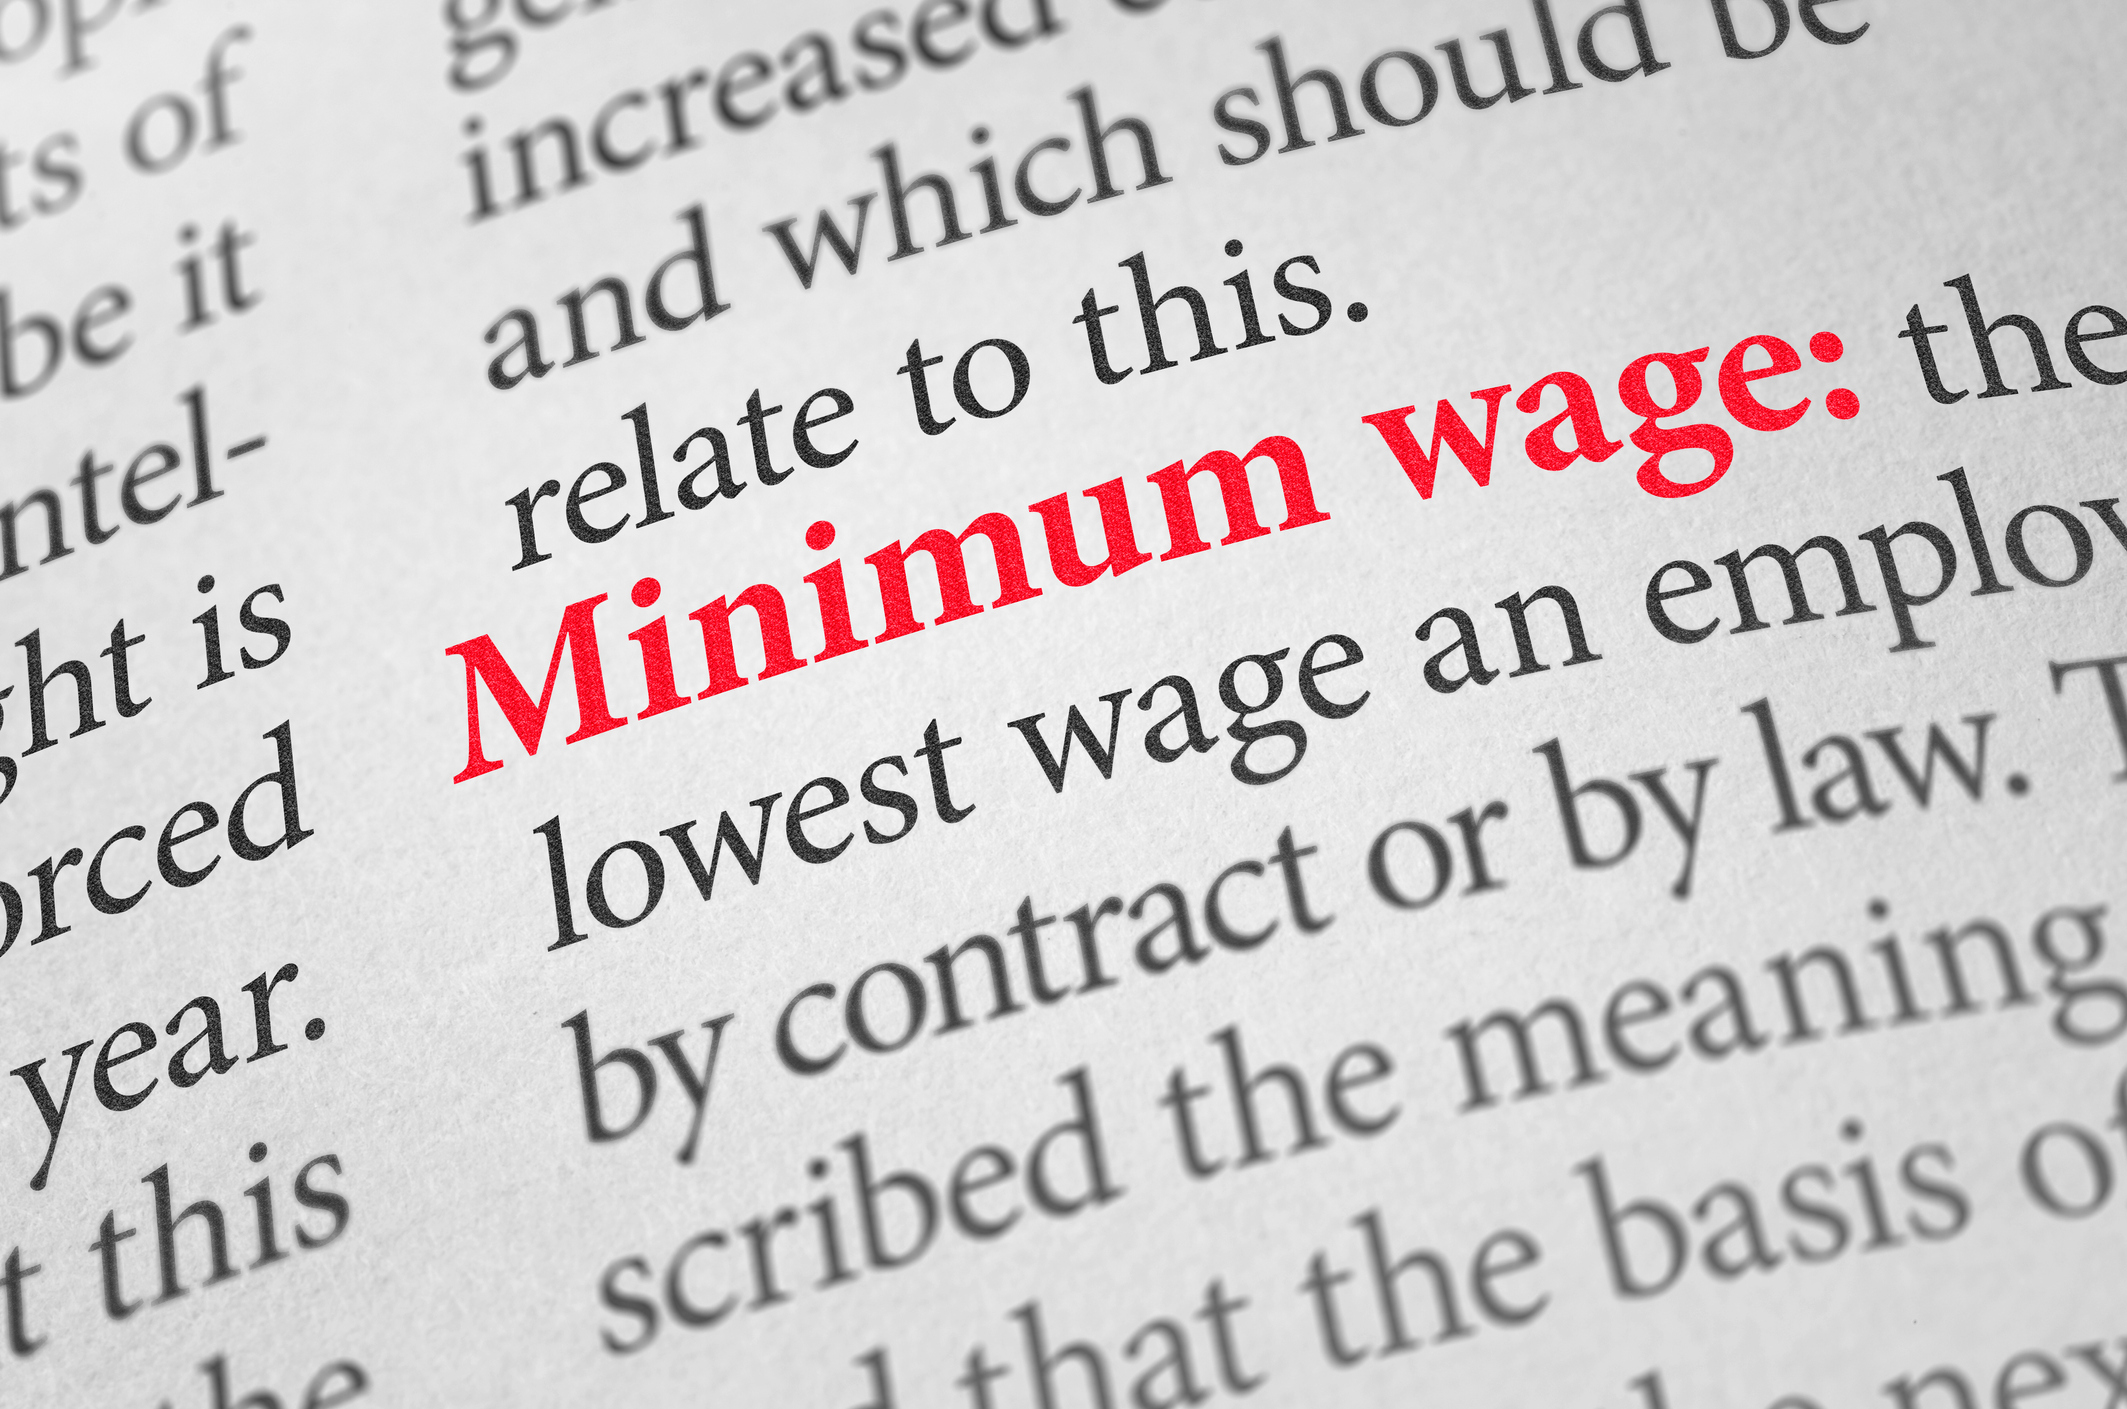 Minimum Wage – 1st April 2019